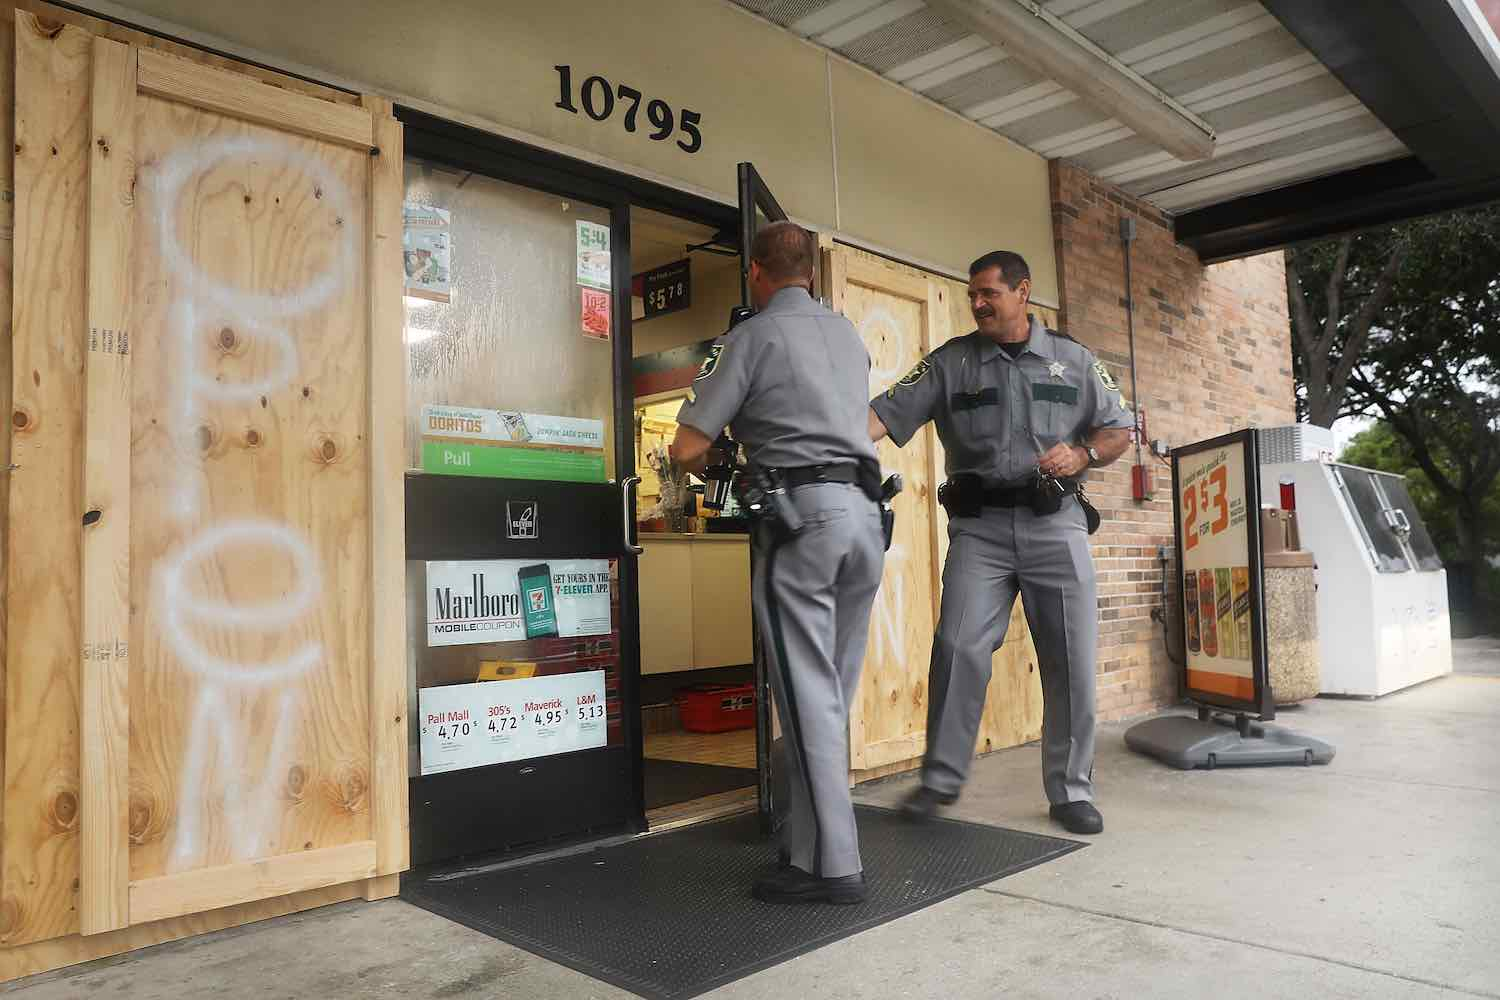 "<div class=""meta image-caption""><div class=""origin-logo origin-image kabc""><span>kabc</span></div><span class=""caption-text"">Police enter one the few remaining businesses open in Naples before the arrival of Hurricane Irma into Southwest Florida on September 9, 2017 in Naples, Florida.  (Spencer Platt/Getty)</span></div>"